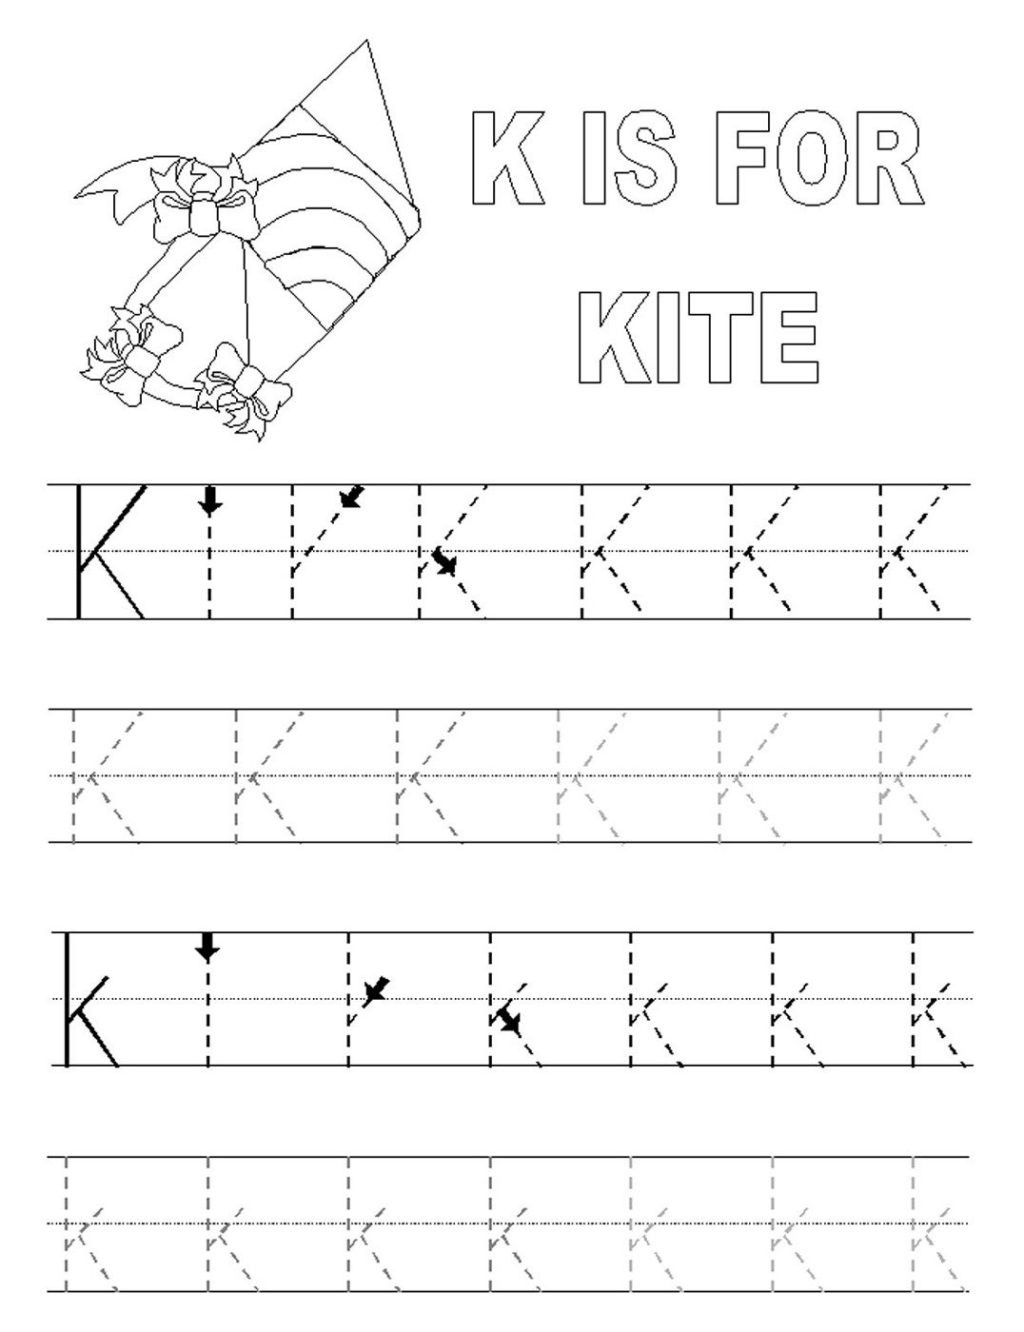 Letter K Tracing Worksheets Preschool Worksheet Kindergarten Worksheetsree Grammaror Grade Math